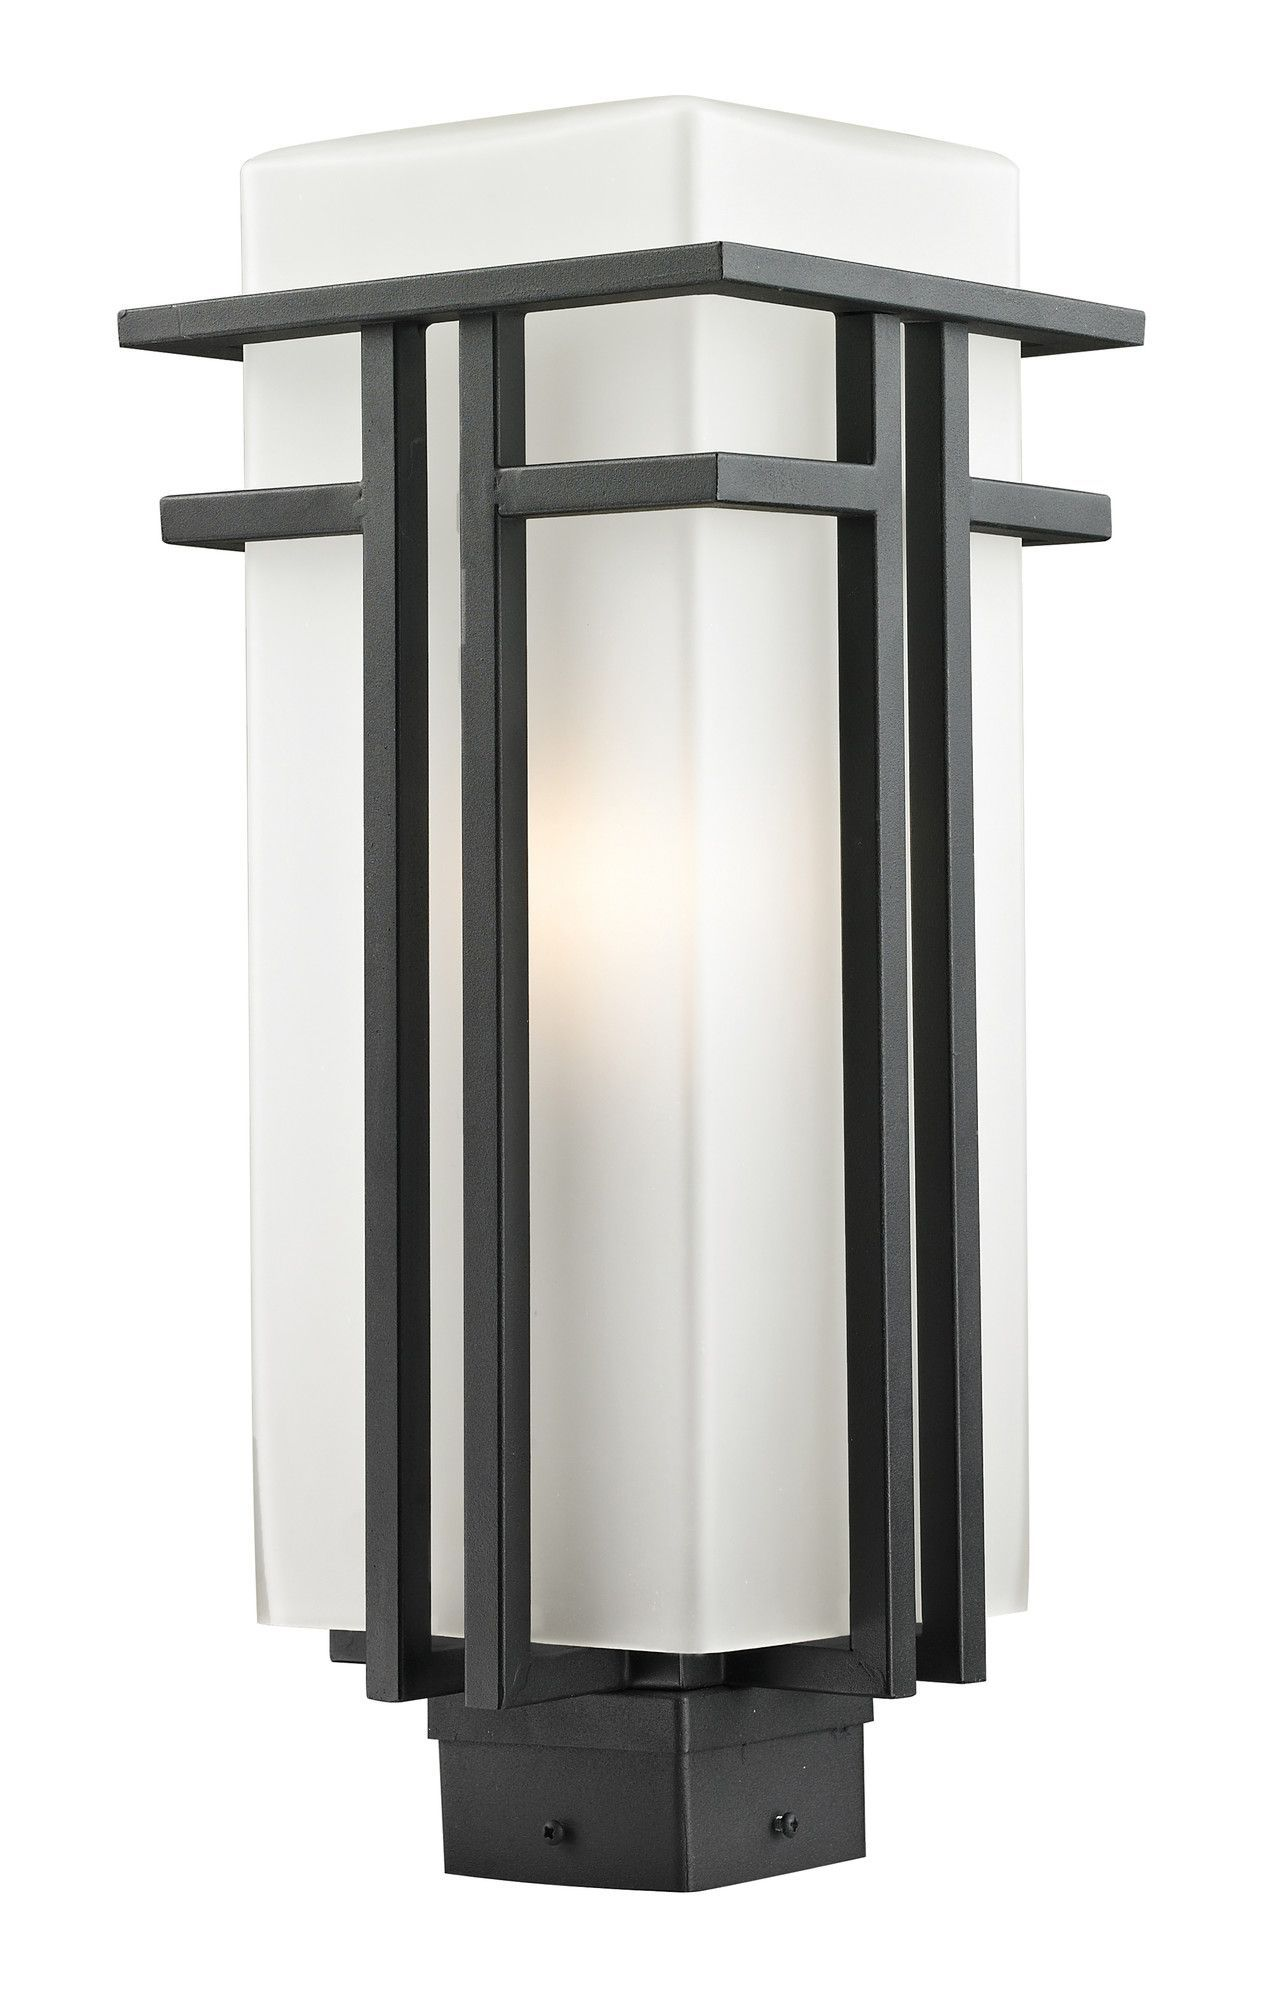 Abbey 1 light outdoor post light products pinterest products abbey 1 light outdoor post light aloadofball Images